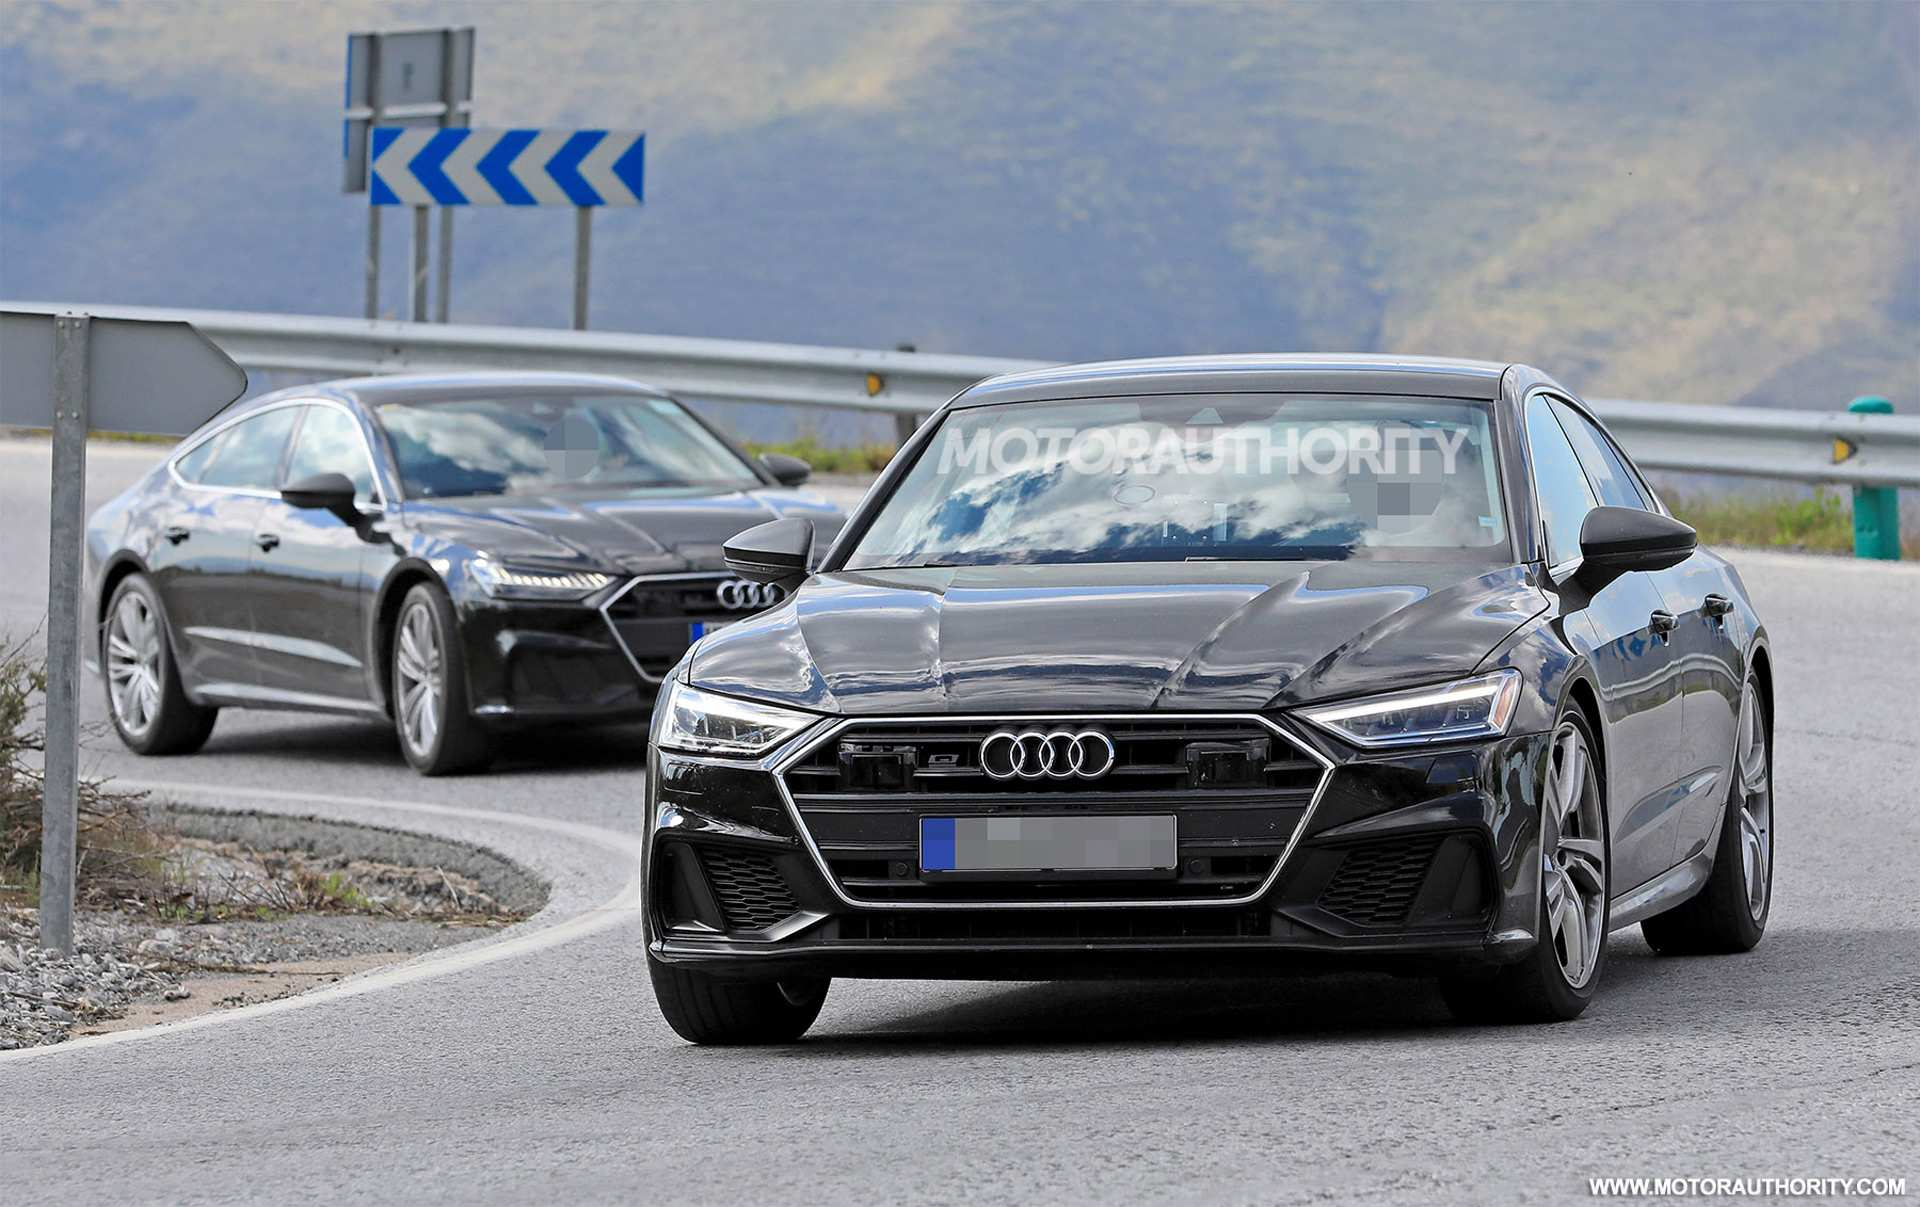 57 All New Best 2019 Audi S7 Engine Performance And New Engine Style with Best 2019 Audi S7 Engine Performance And New Engine